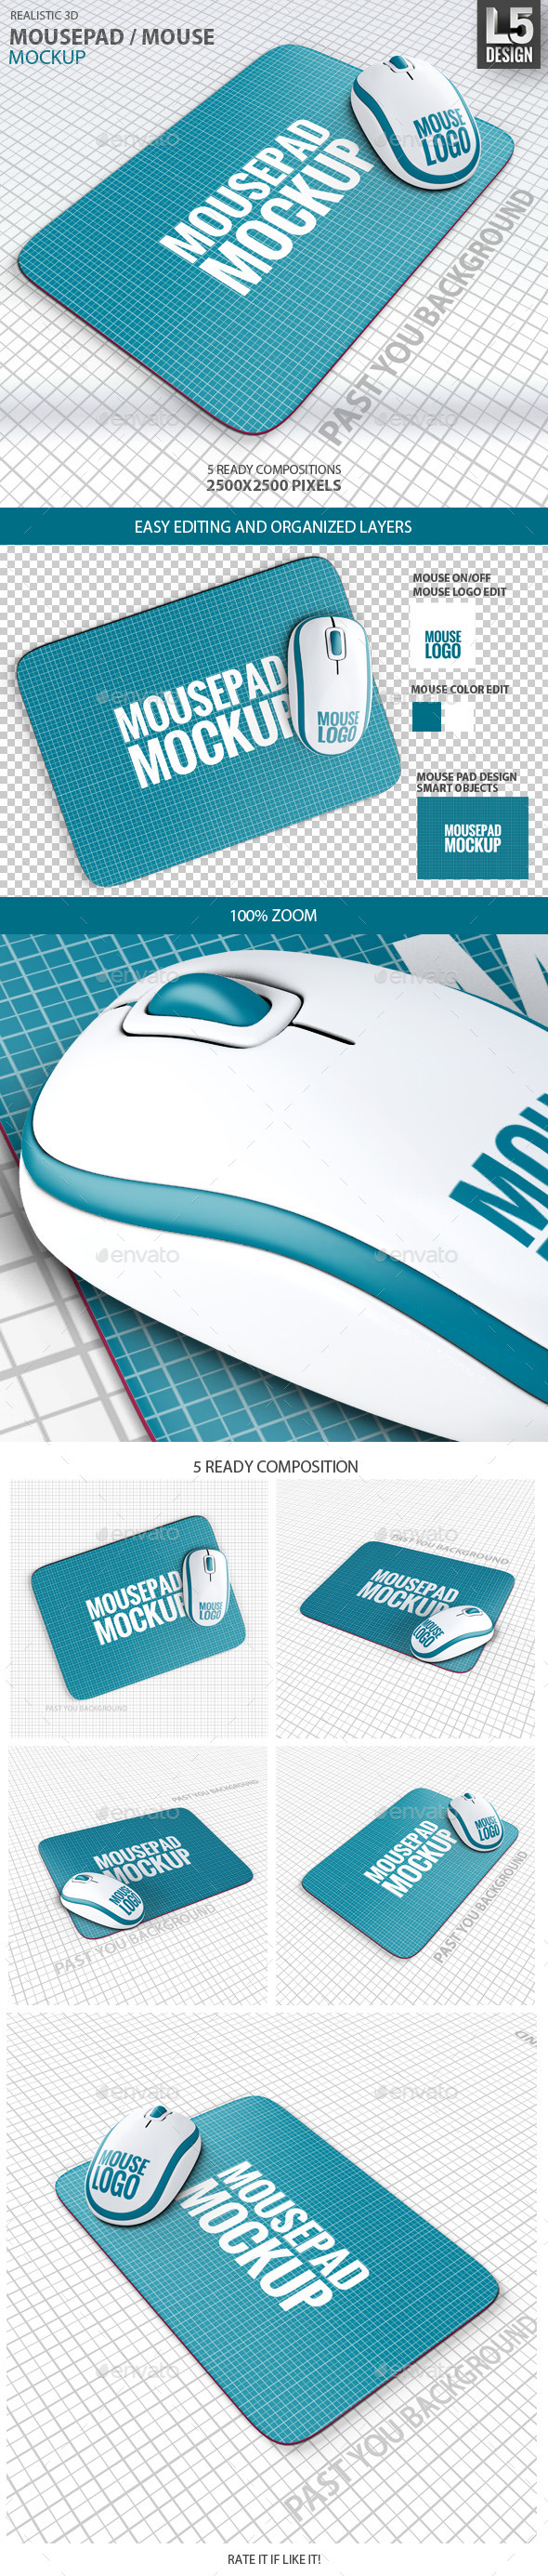 GraphicRiver Mousepad Mouse Mock-up 9583169